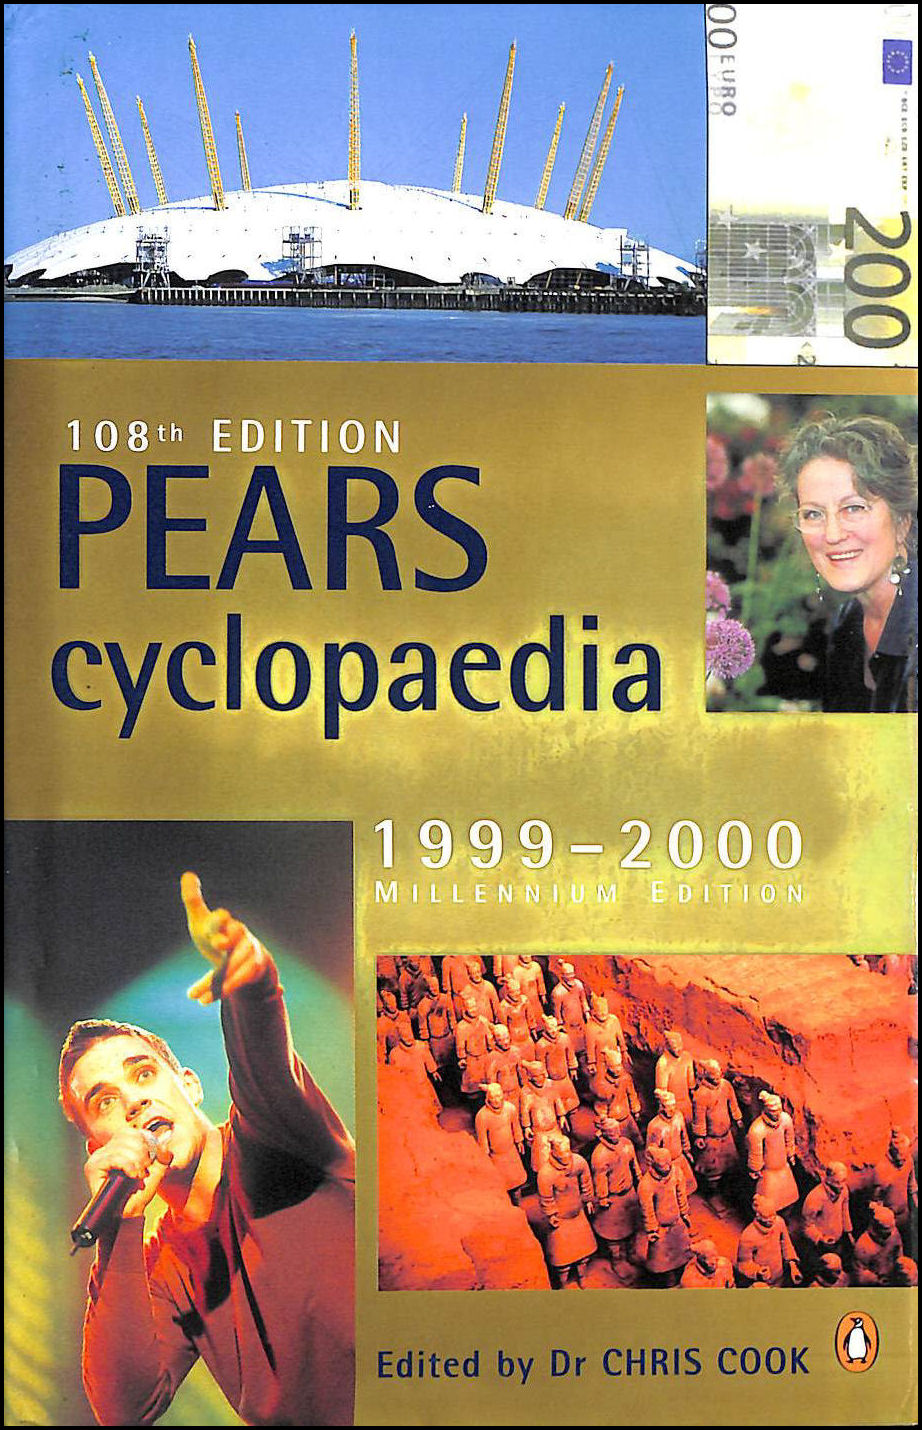 Image for Pears Cyclopaedia 1999-2000